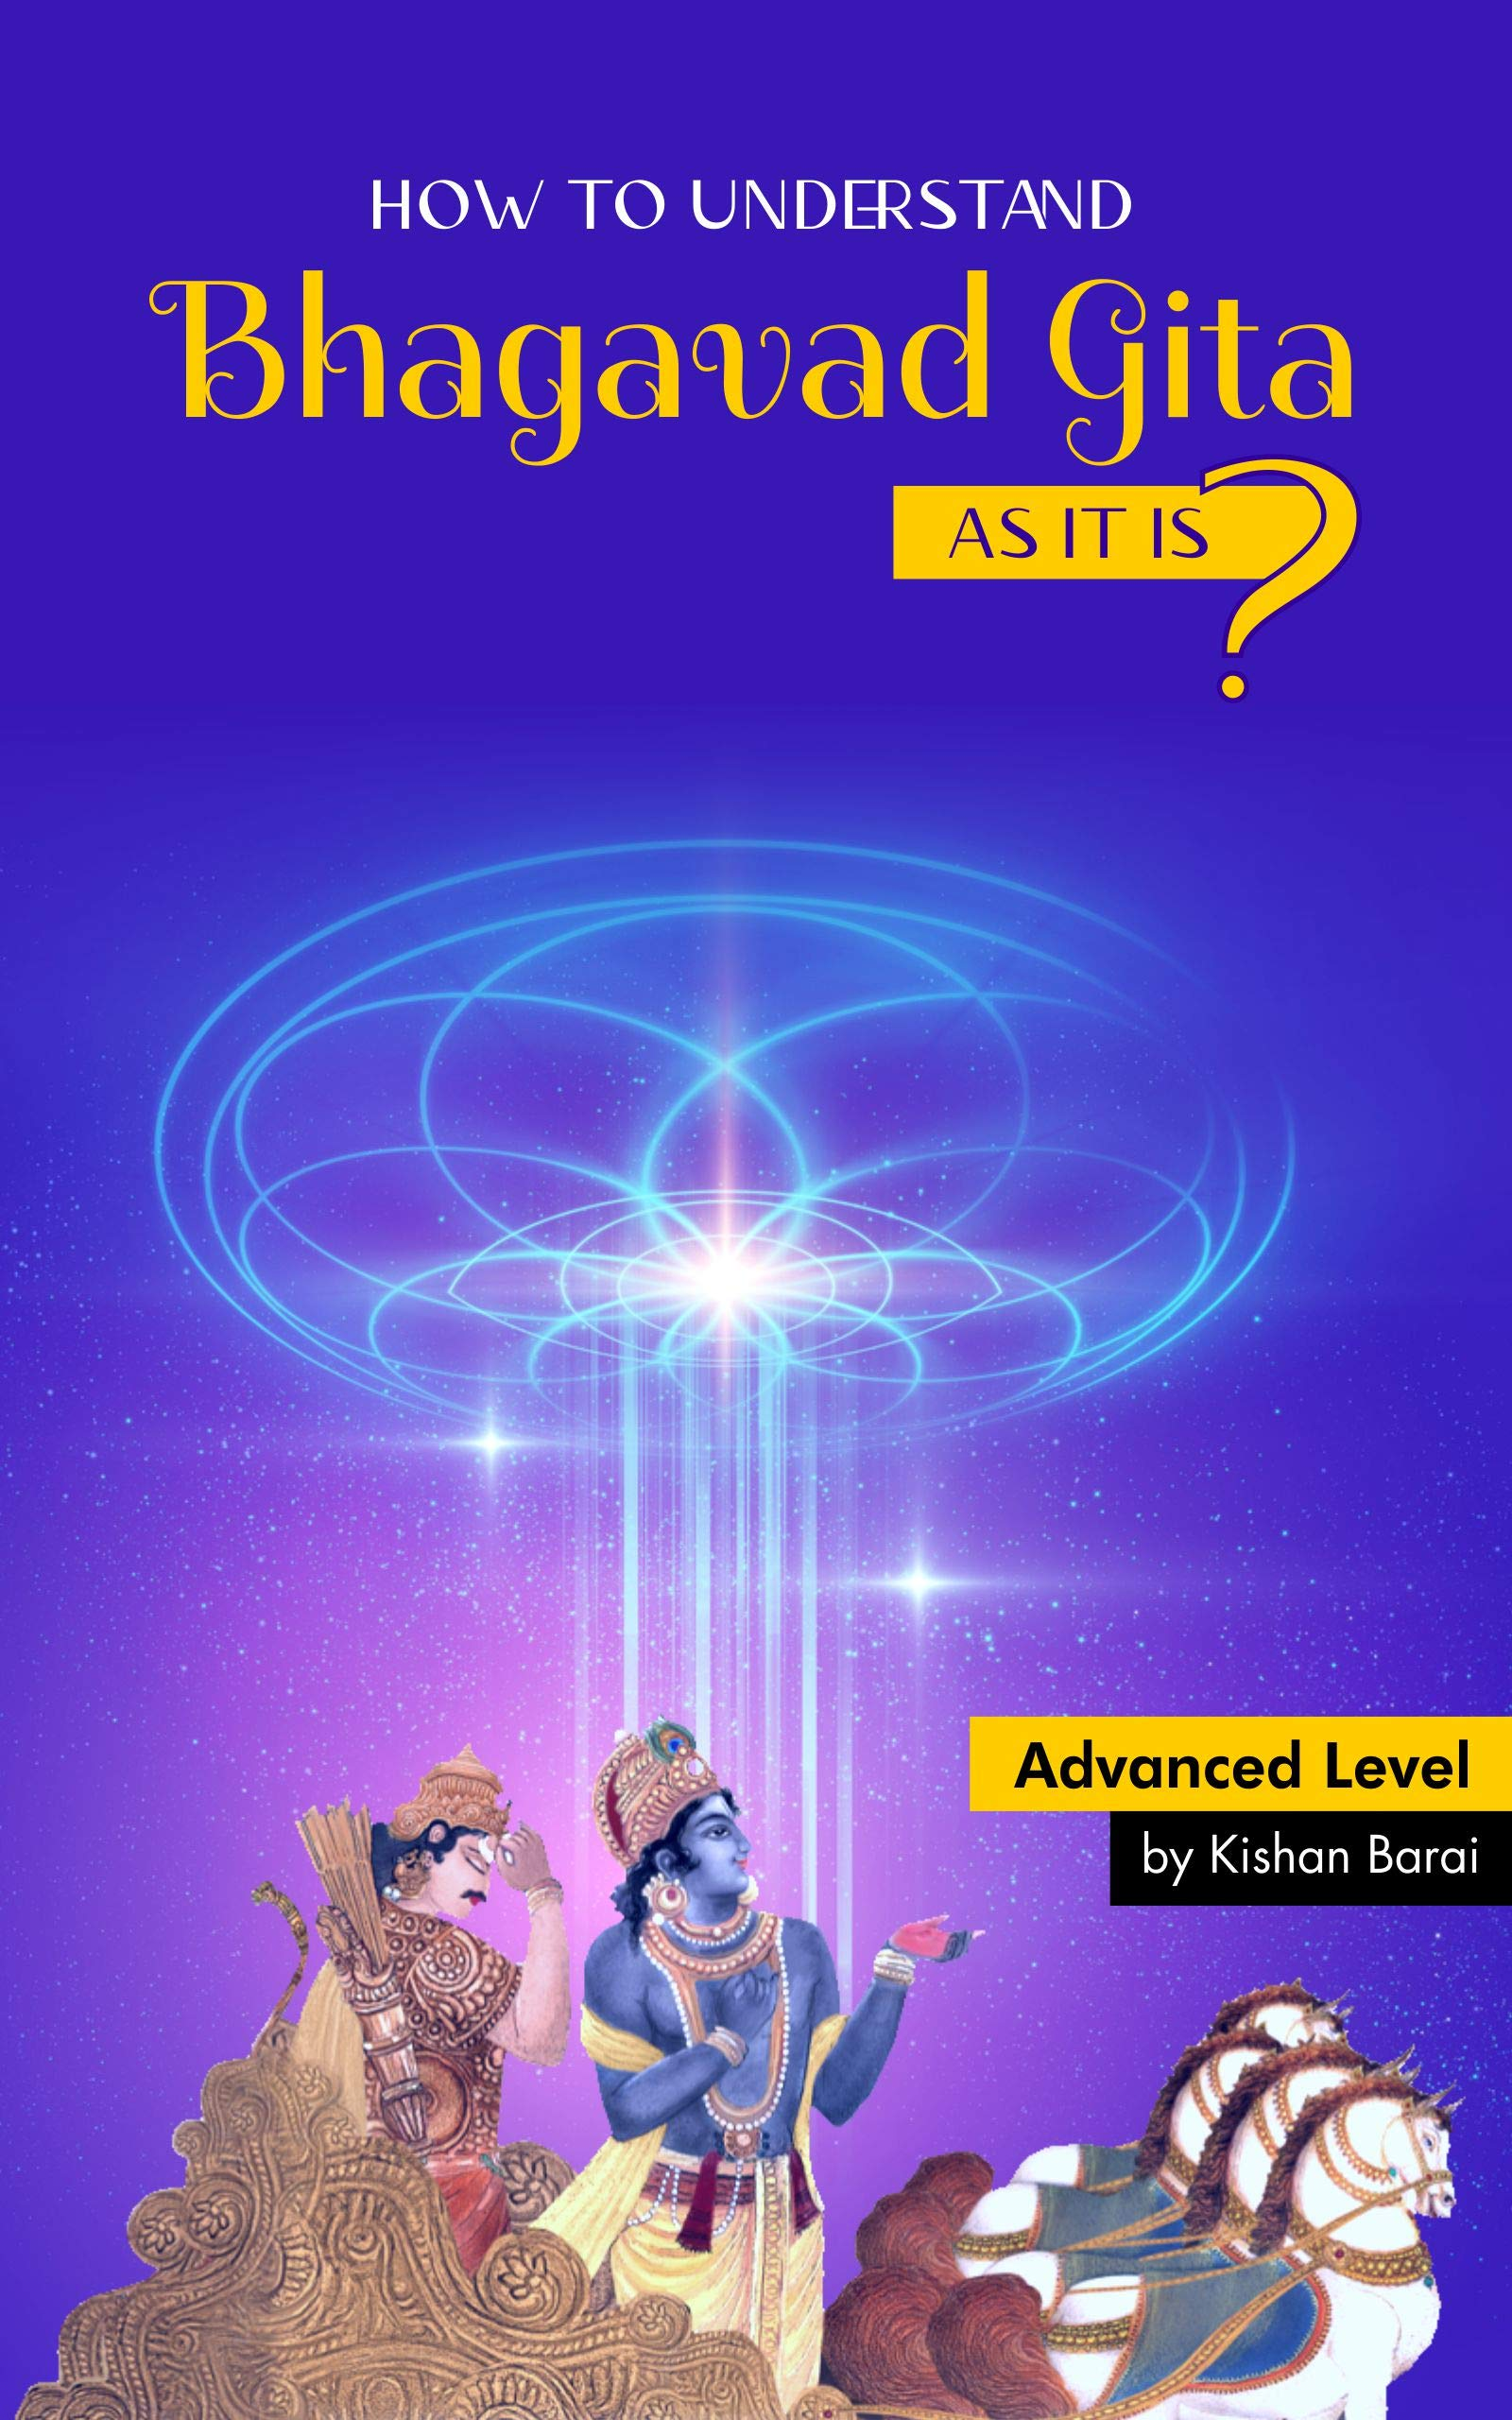 How to Understand Bhagavad Gita As it Is ?: - Advanced Level